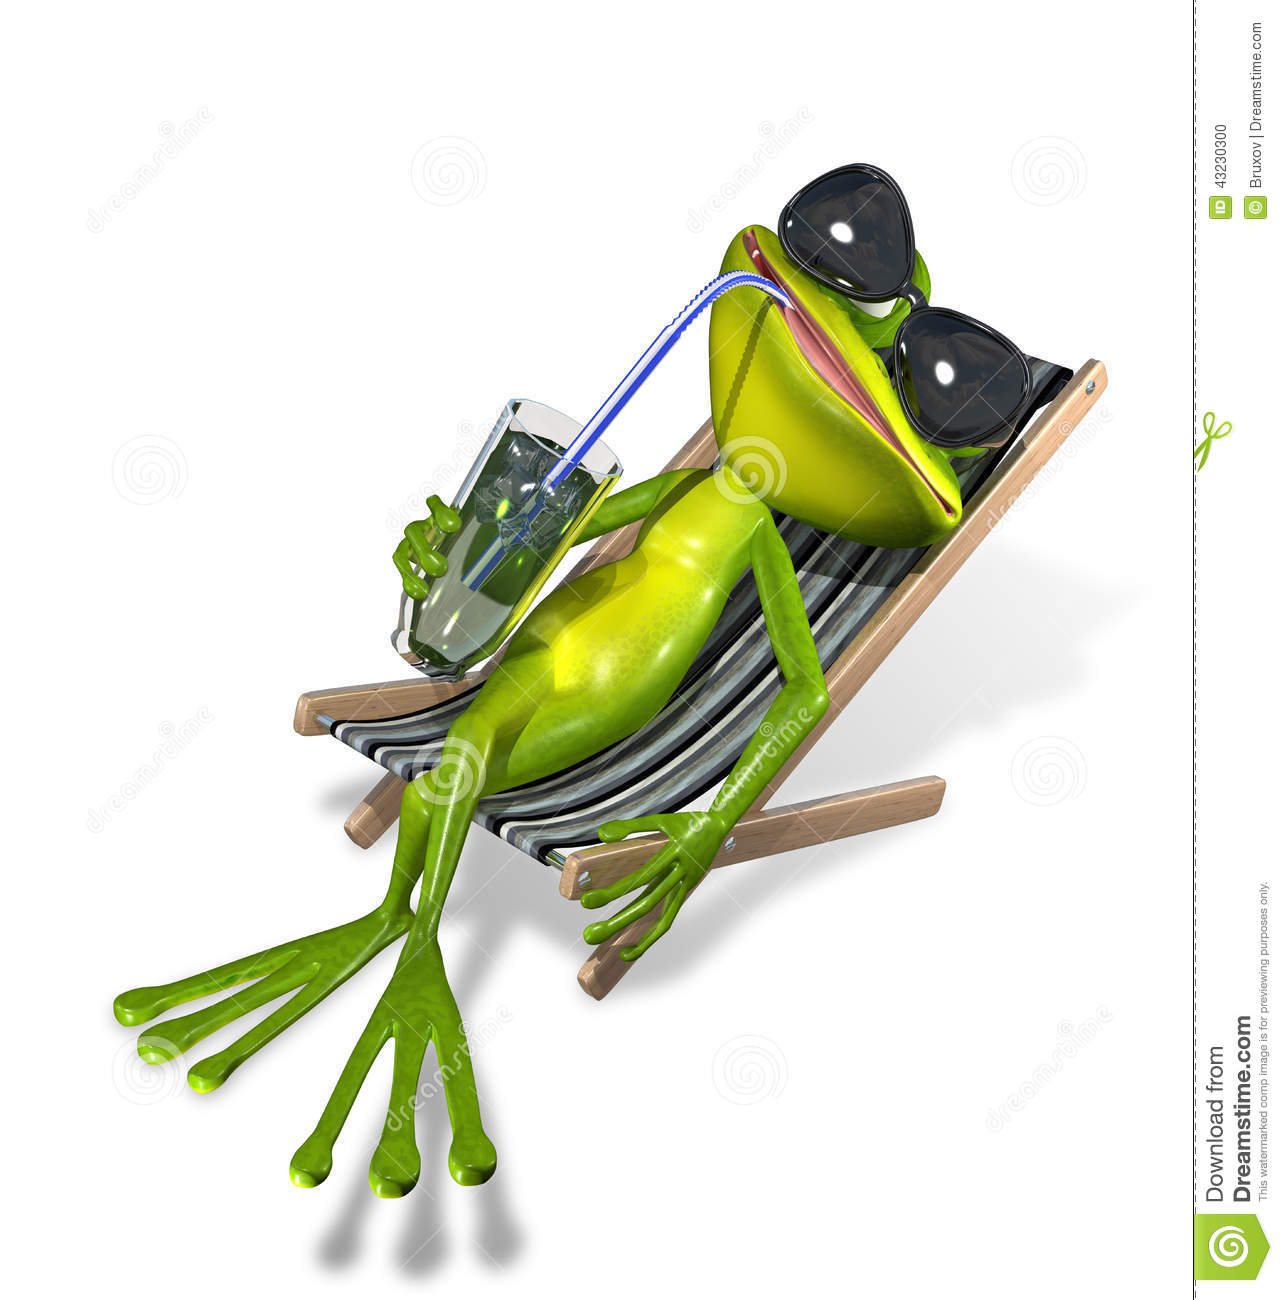 Clipart Liegestuhl Frog In A Deckchair Stock Illustration Image 43230300